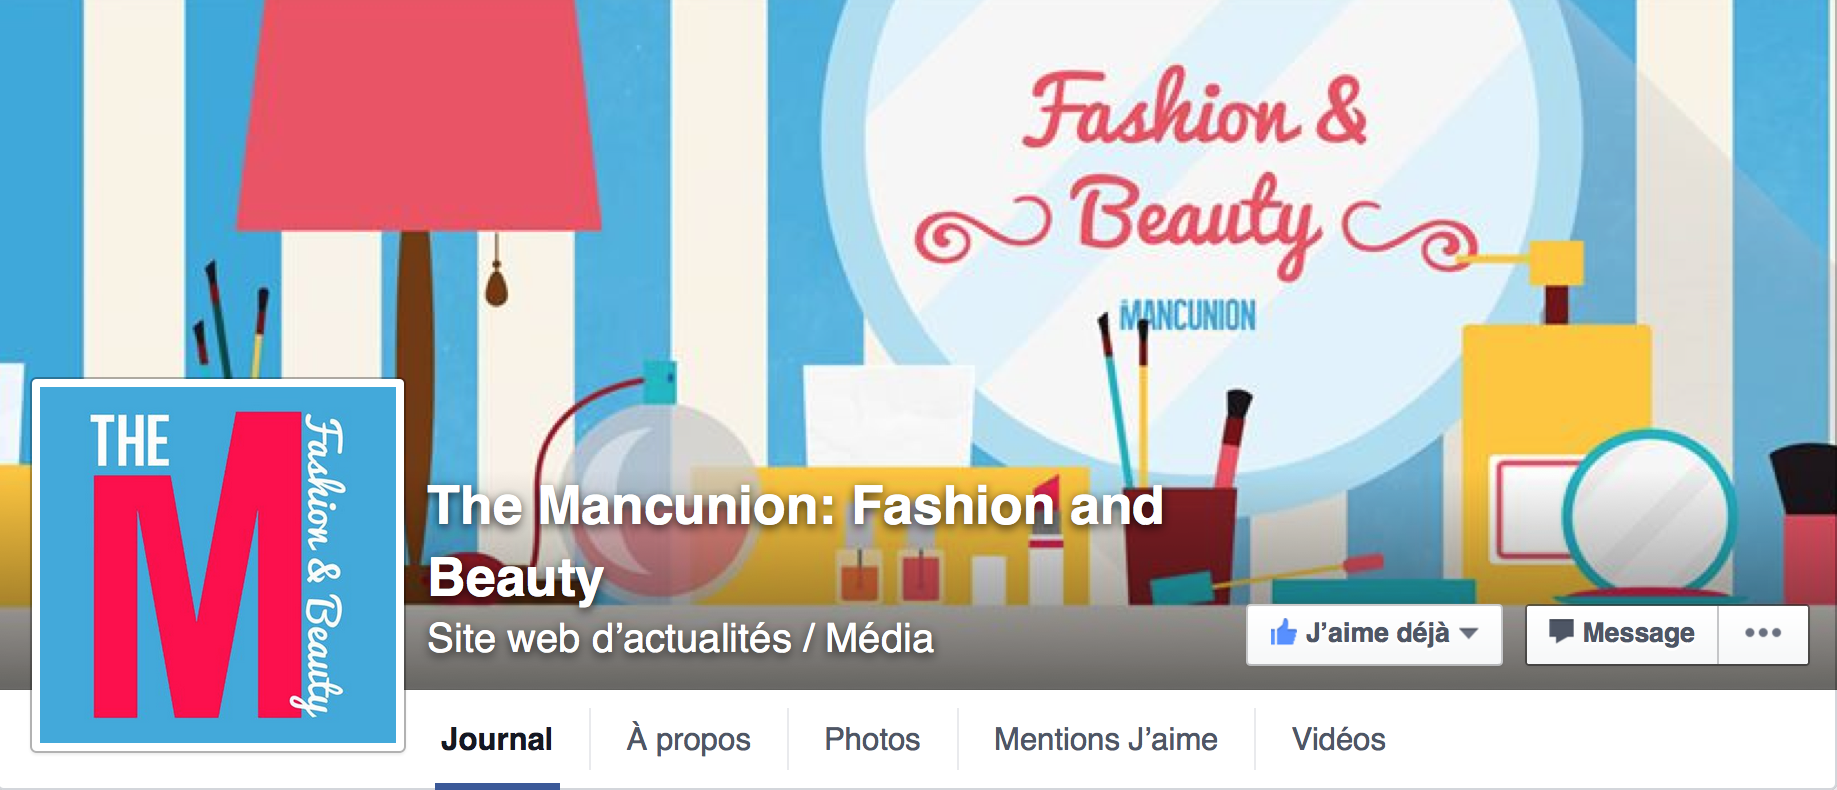 THE MANCUNION FASHION & BEAUTY